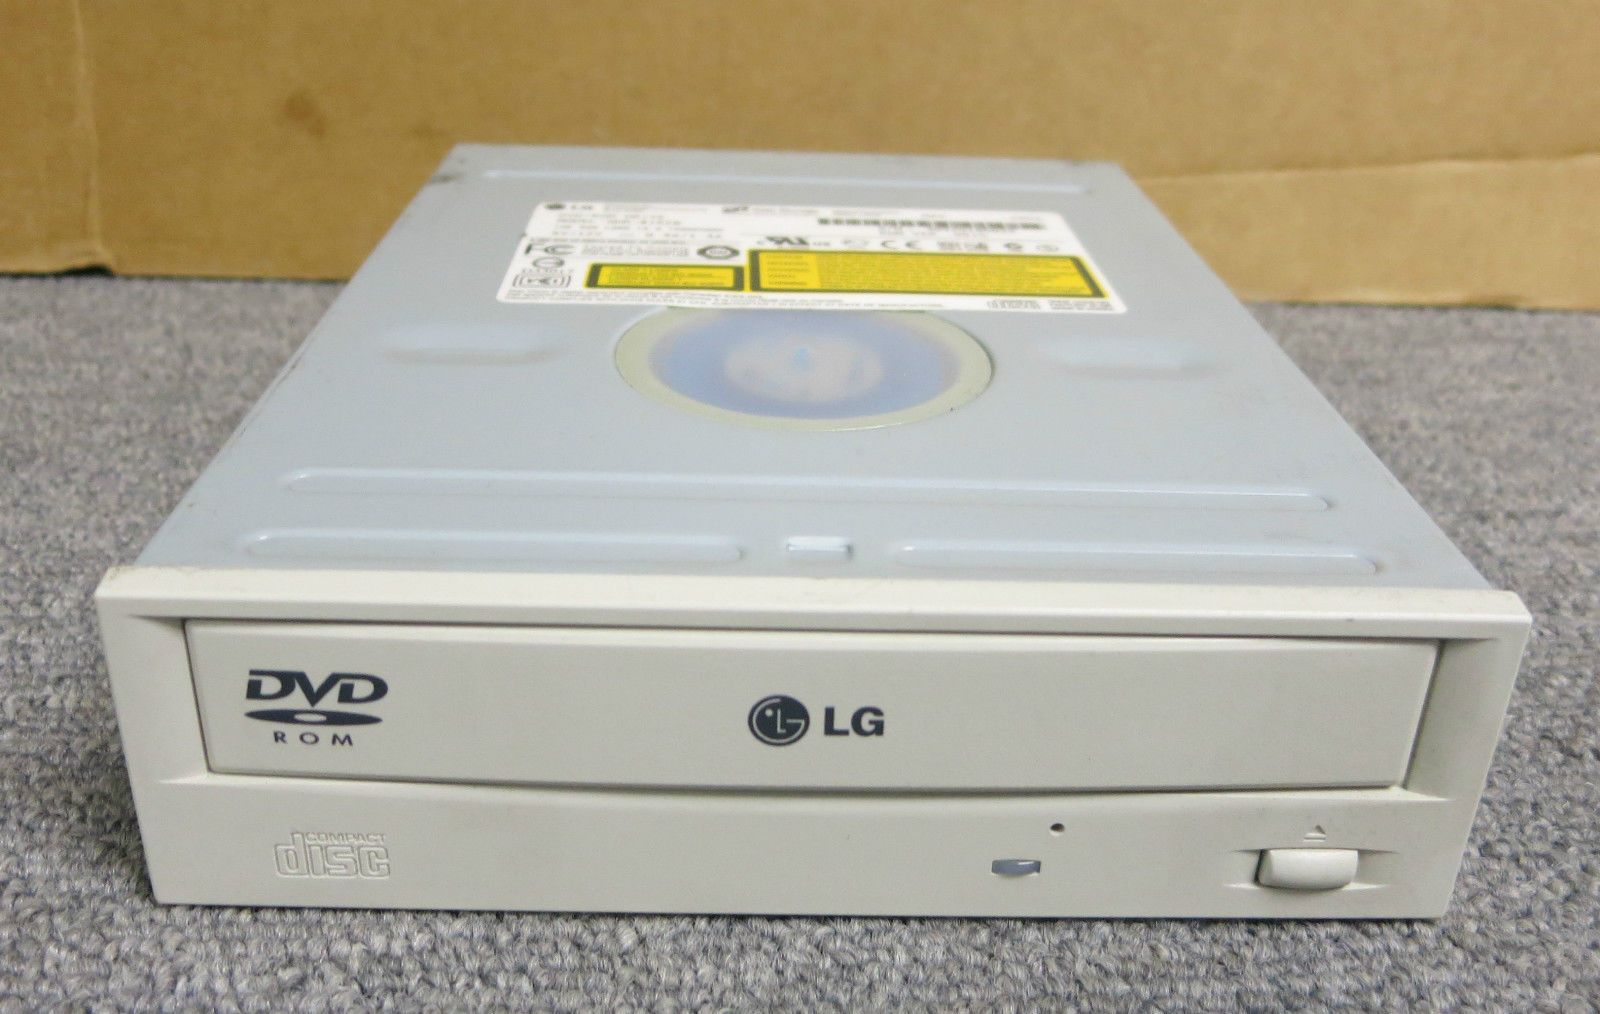 Icmcnj besides Lg Gdr 8162b Dvd Rom 48x Cd 16x Ide Cd Rom Dvd Rom Drive 37554 P in addition Stock Photo Exchange Rates Board Tourist Streetside Booth As Thai Baht Falls To Nine Month Low June Bangkok Thailand Baht Image31517500 additionally Inquiring Minds David Amodio Your Brain On Racism likewise Sony Mp3 Player 8gb Walkman Nwz E384 Refurbished. on sterling audio